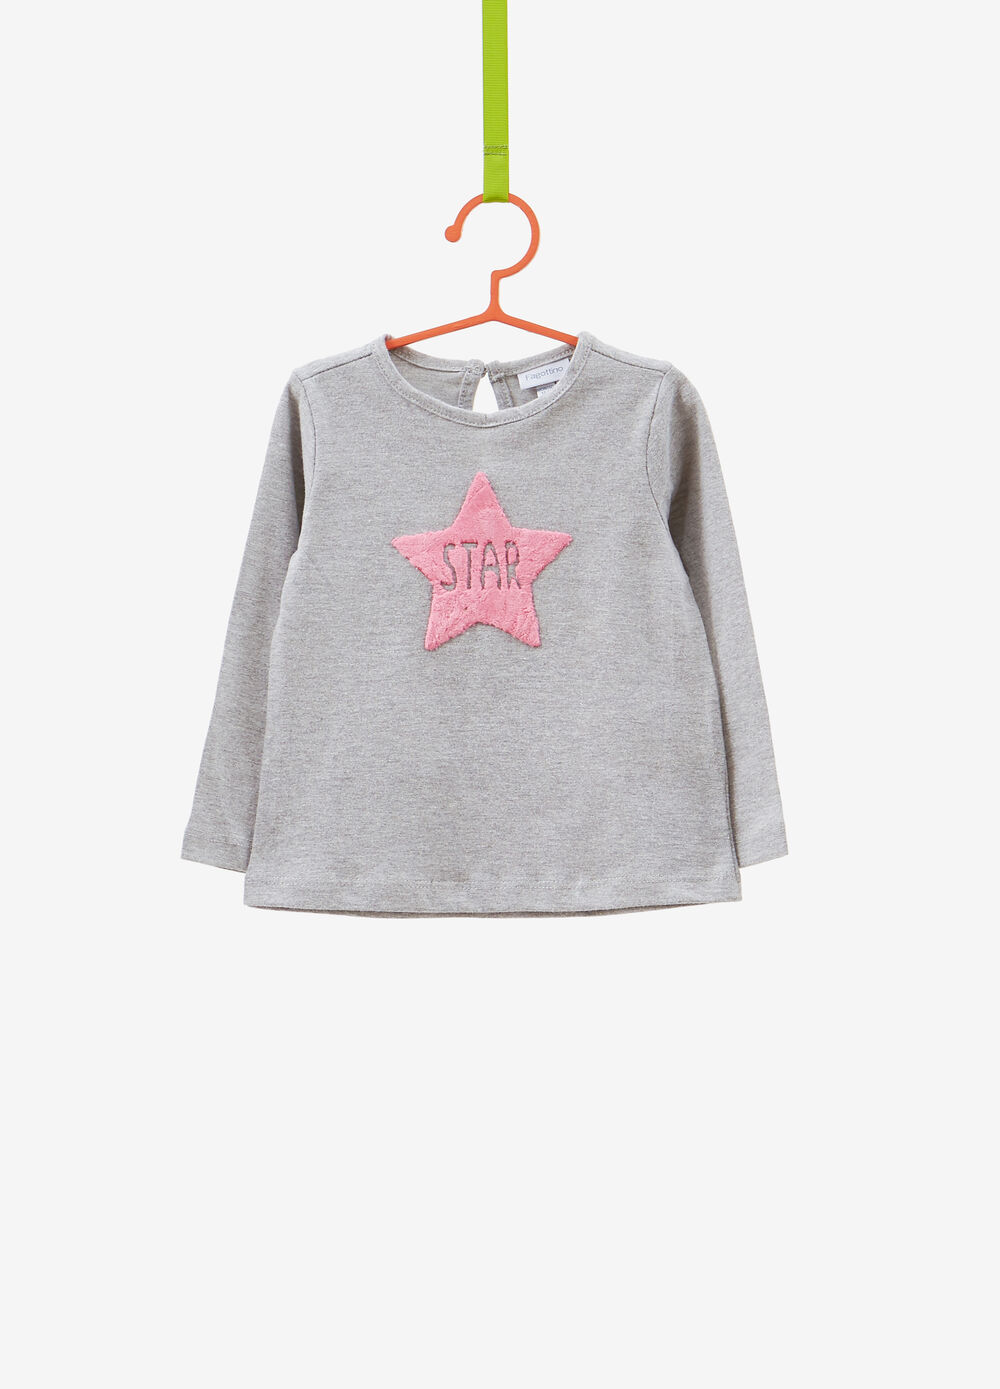 100% cotton T-shirt with star patch